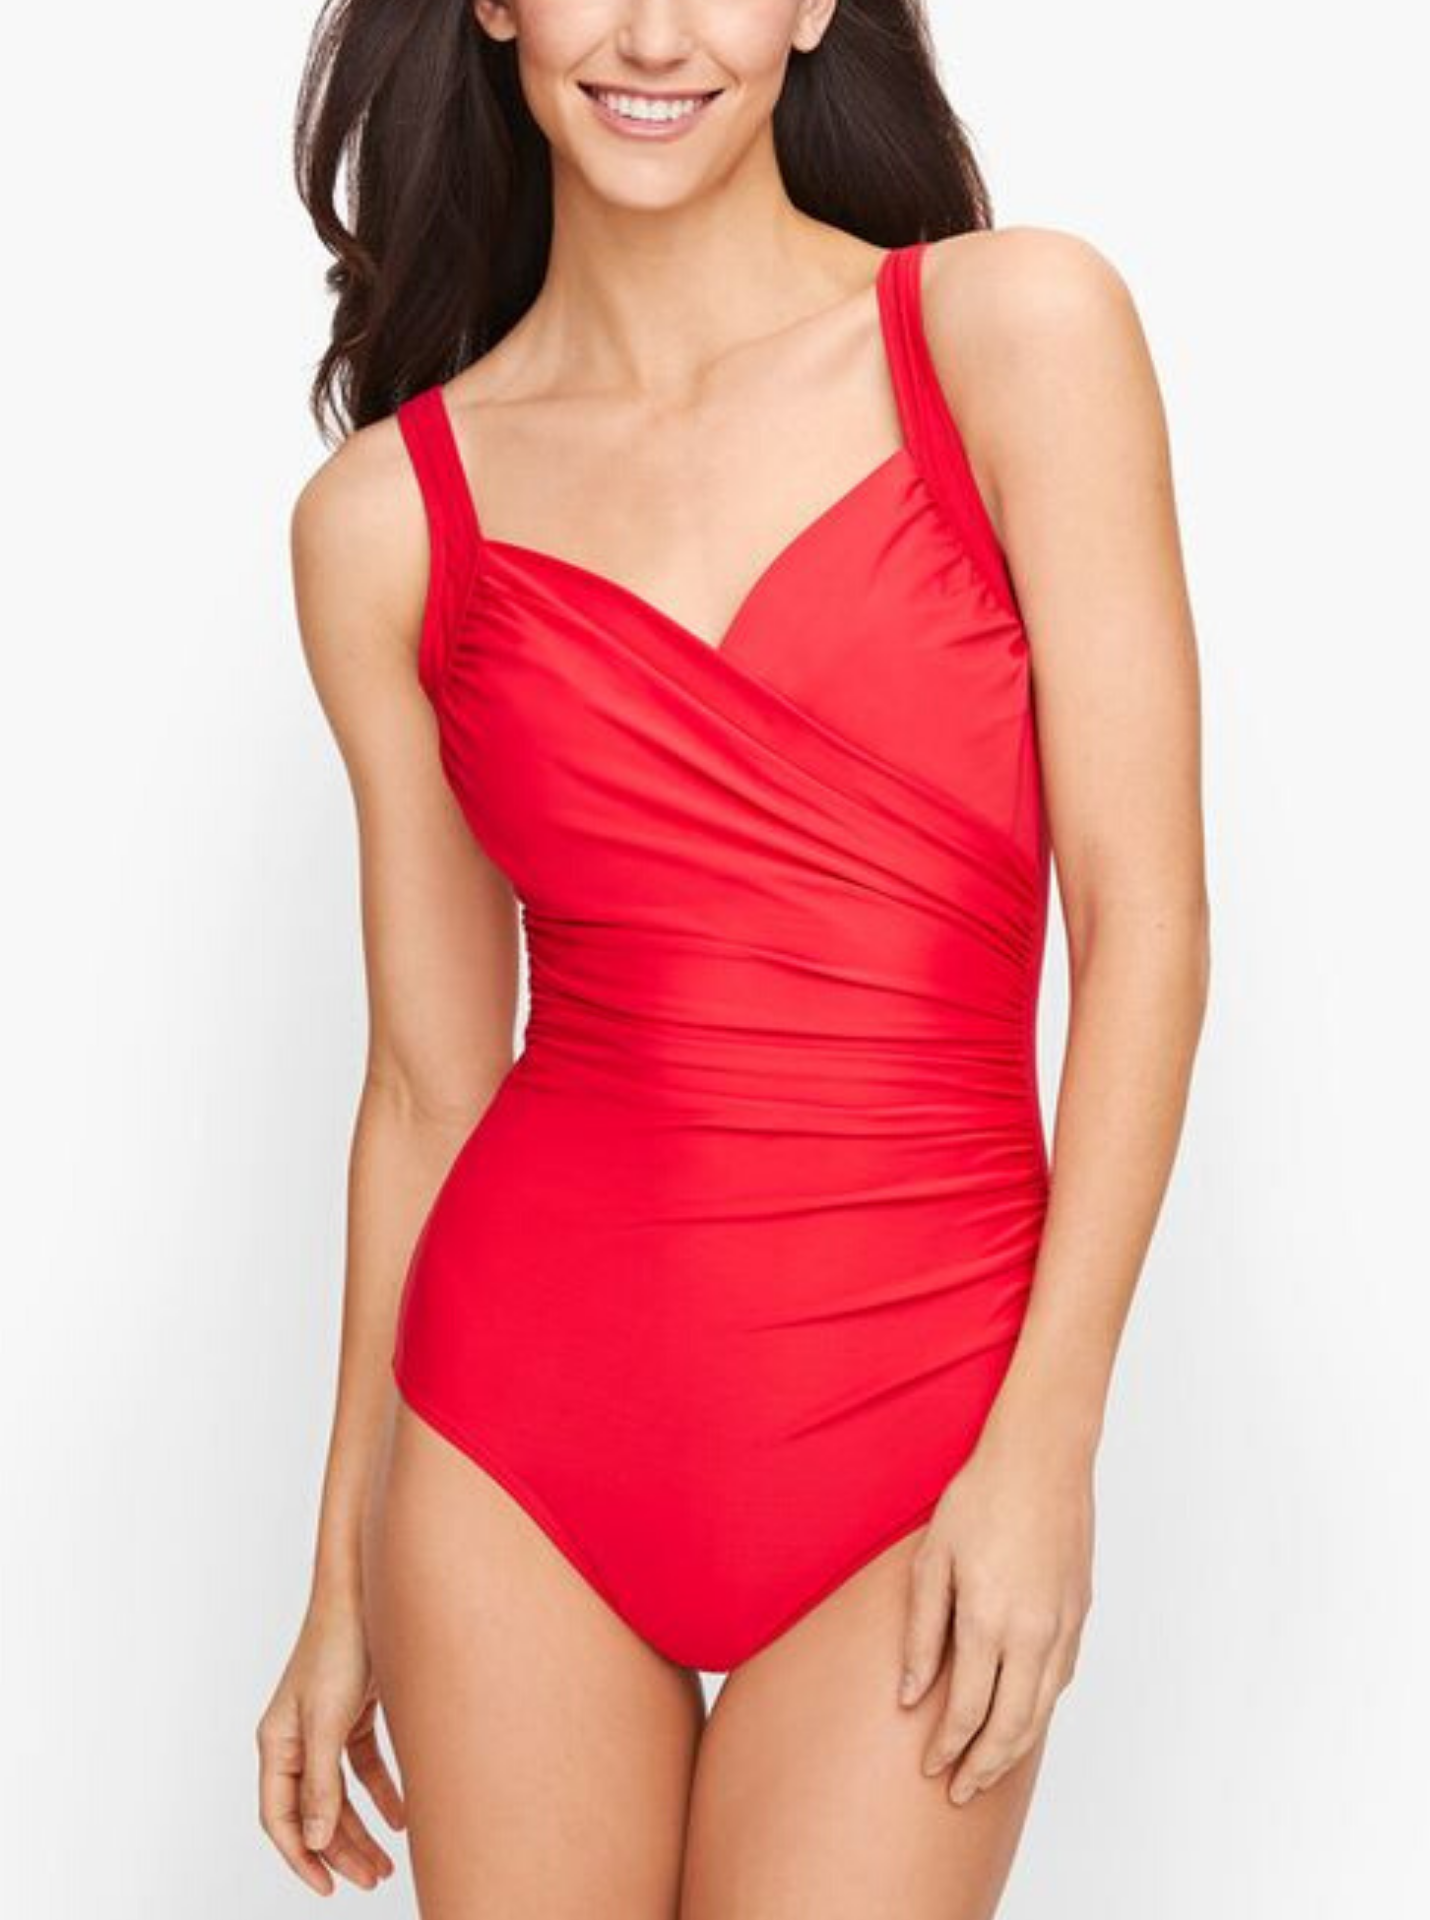 2020 Swimsuit Guide for Women Over 50